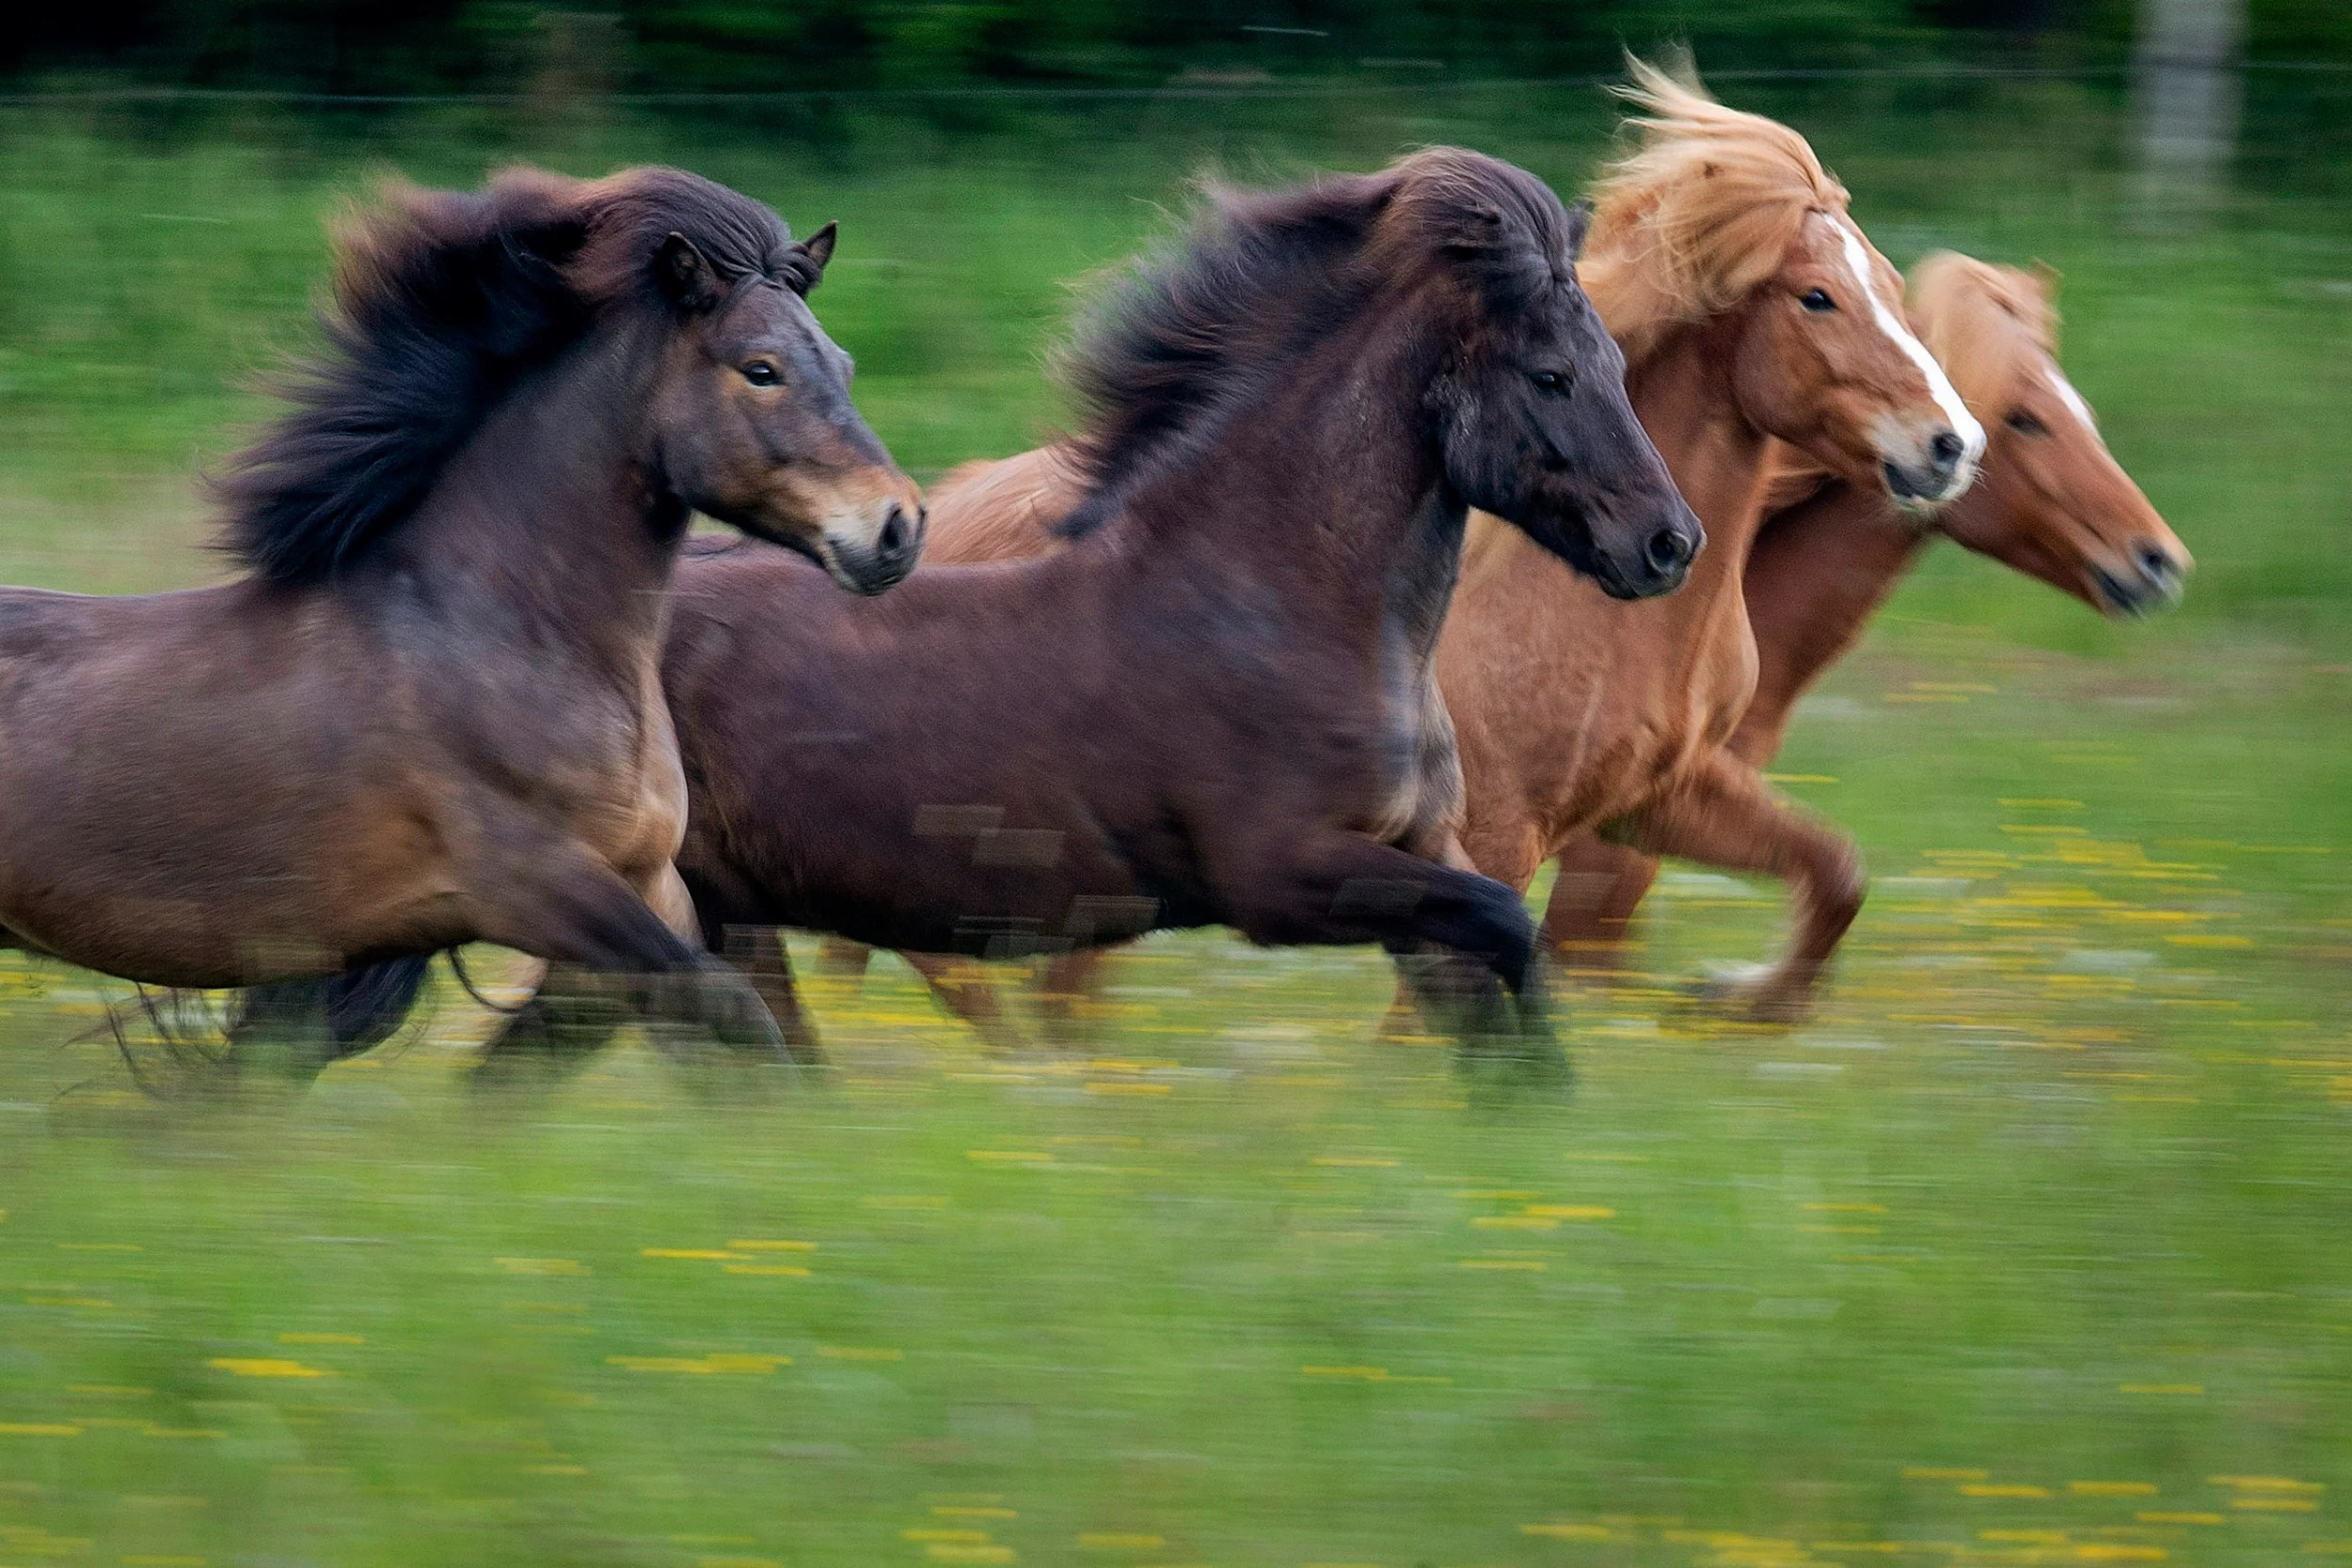 Fear And Mystery As Dozens Of Horses Across France Killed In Ritual Mutilations London Evening Standard